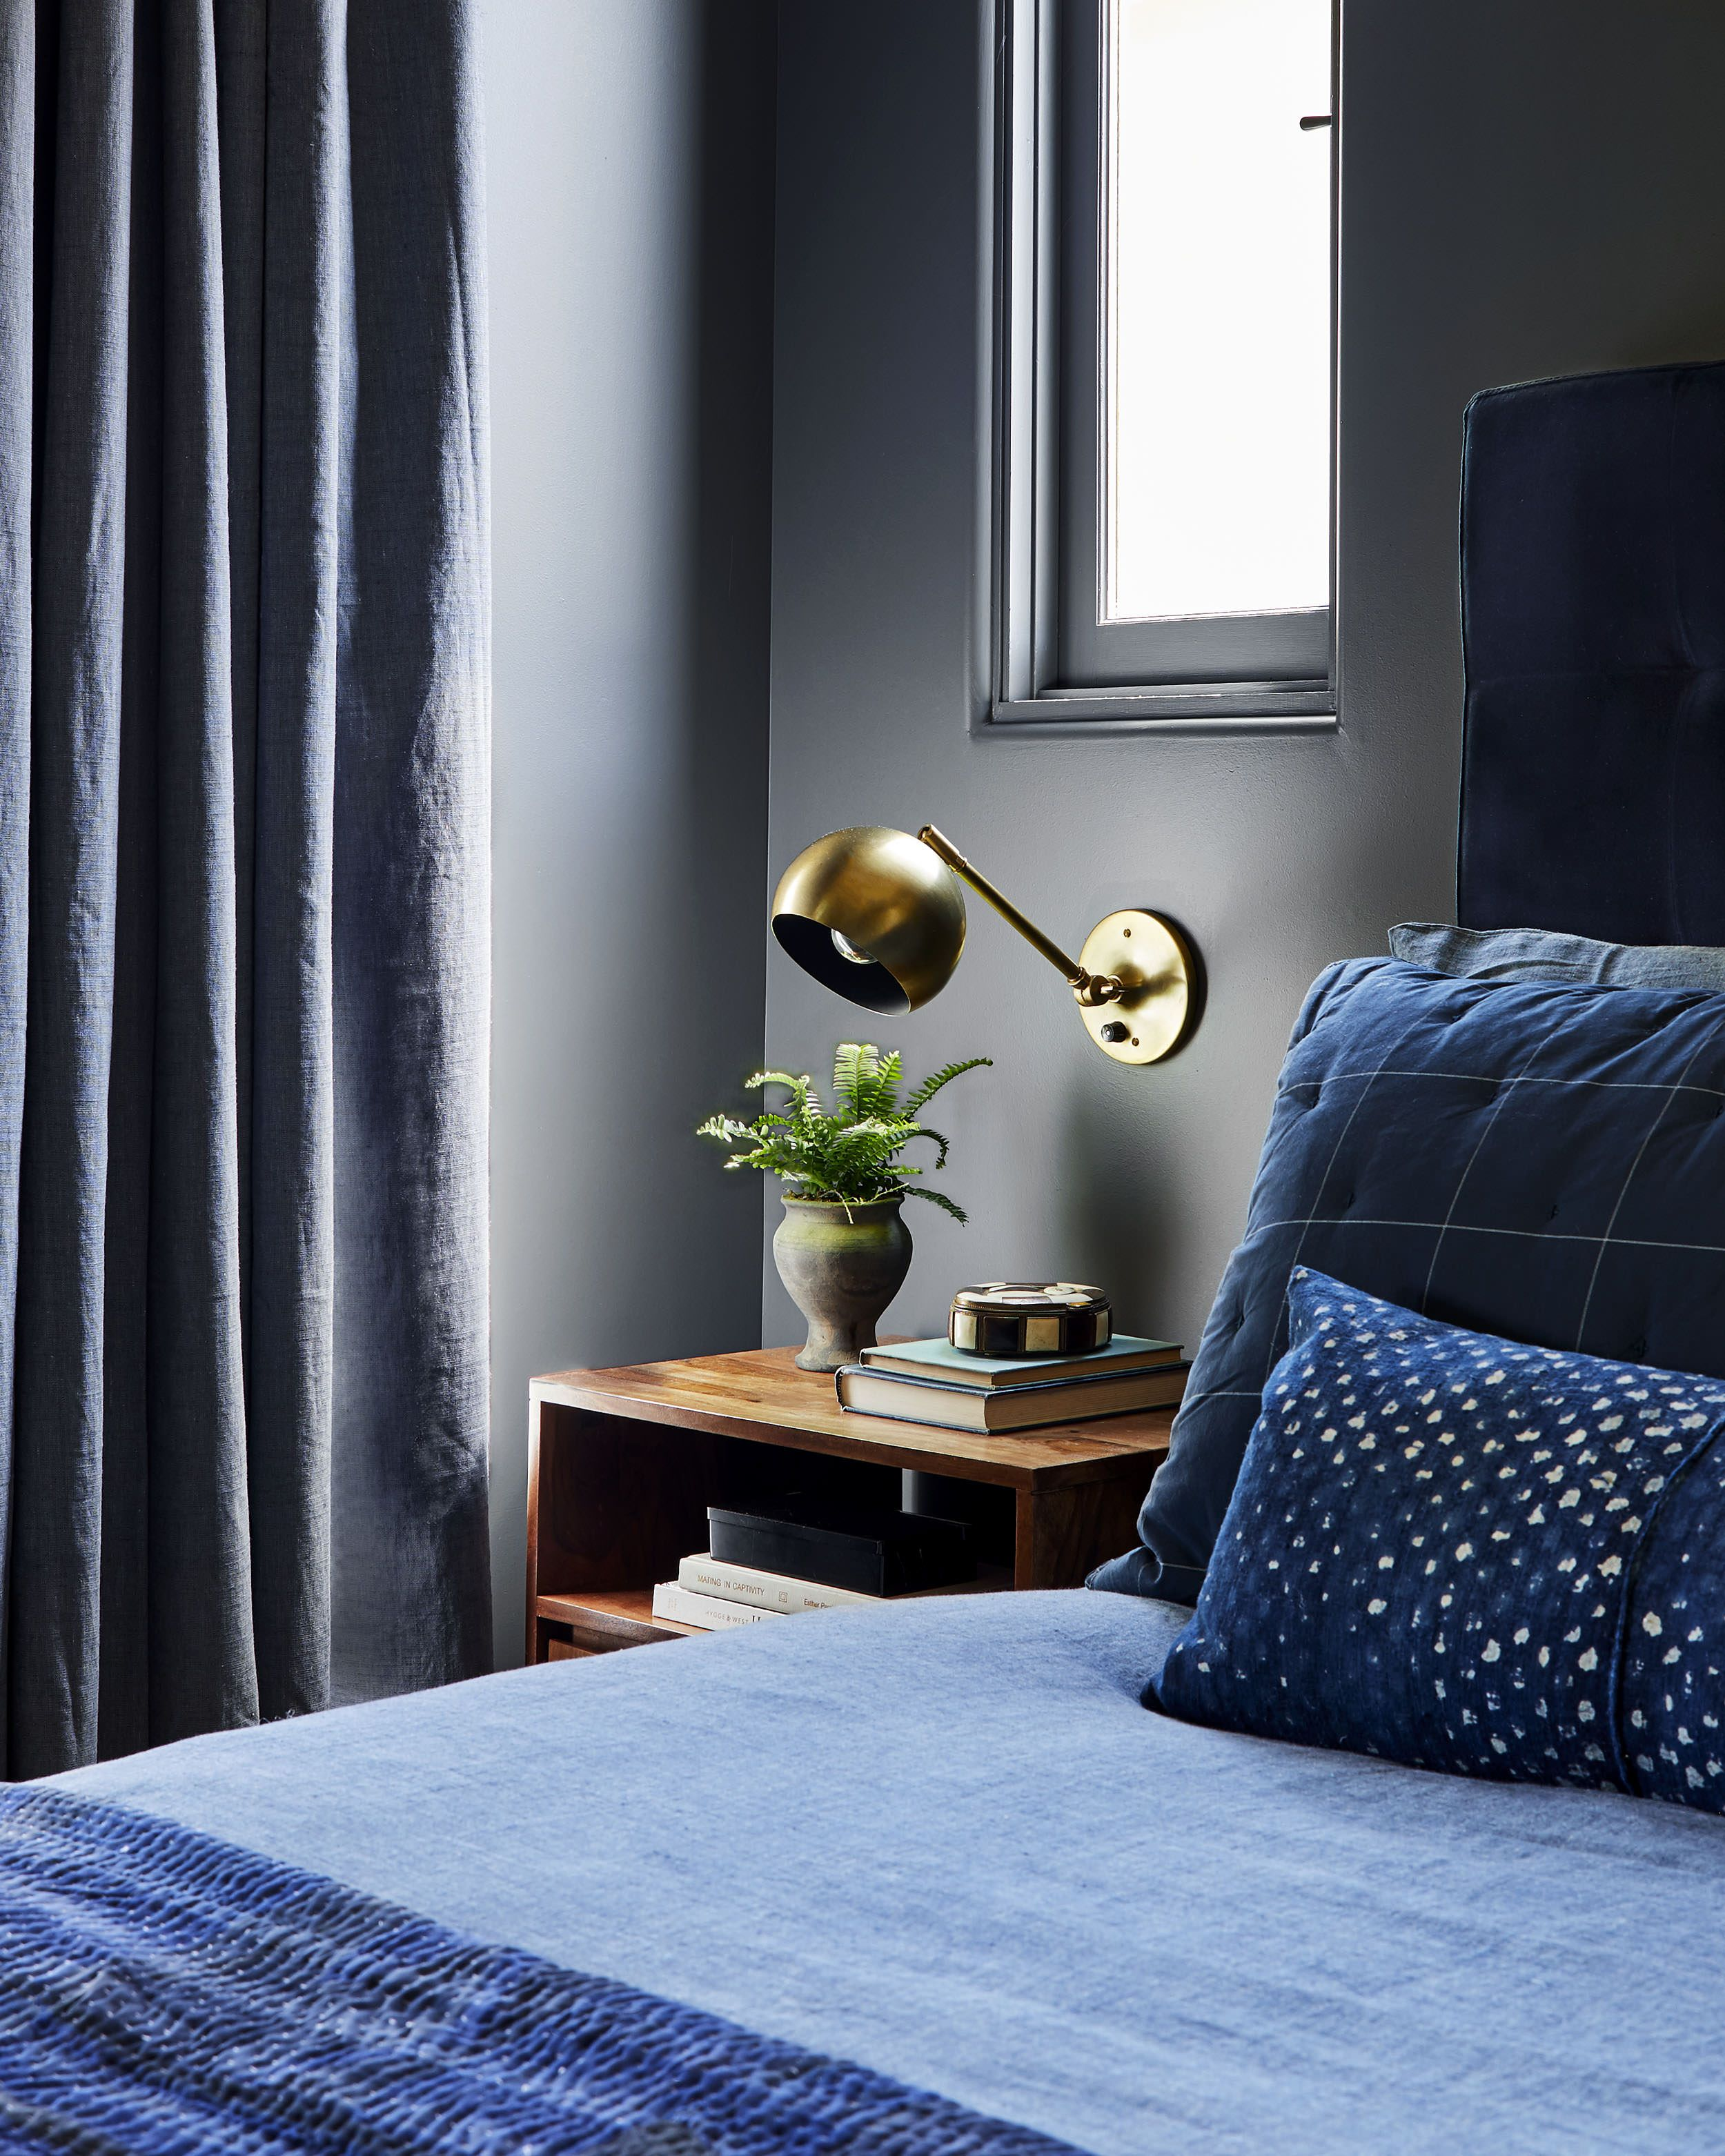 Bedroom Ideas 52 Modern Design Ideas For Your Bedroom: 7 Keys To Know To Nail That Moody Yet Modern Look In Your